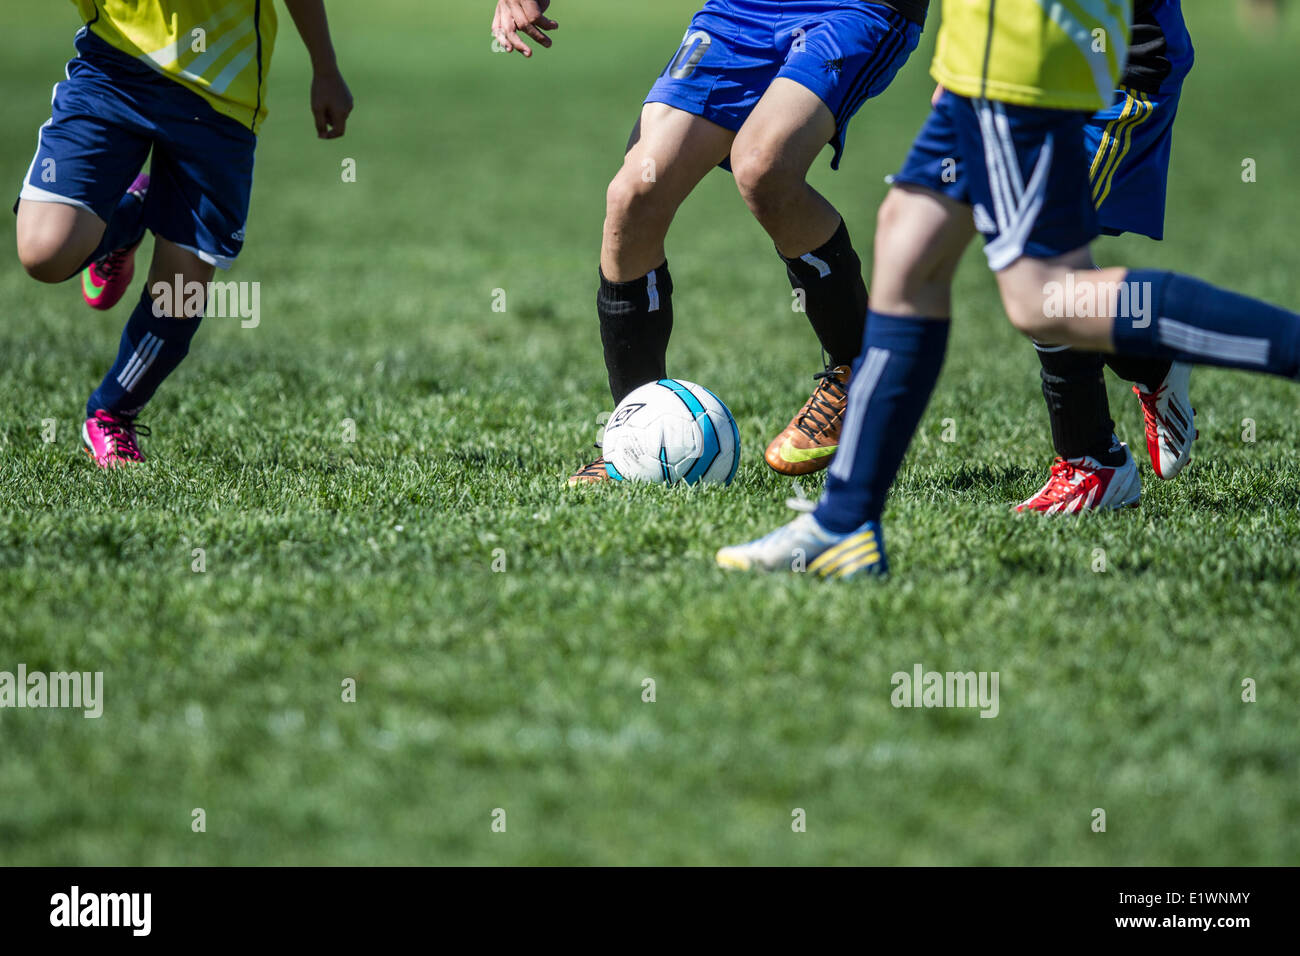 Teenage soccer action, fighting for possession. Calgary, Alberta, Canada - Stock Image